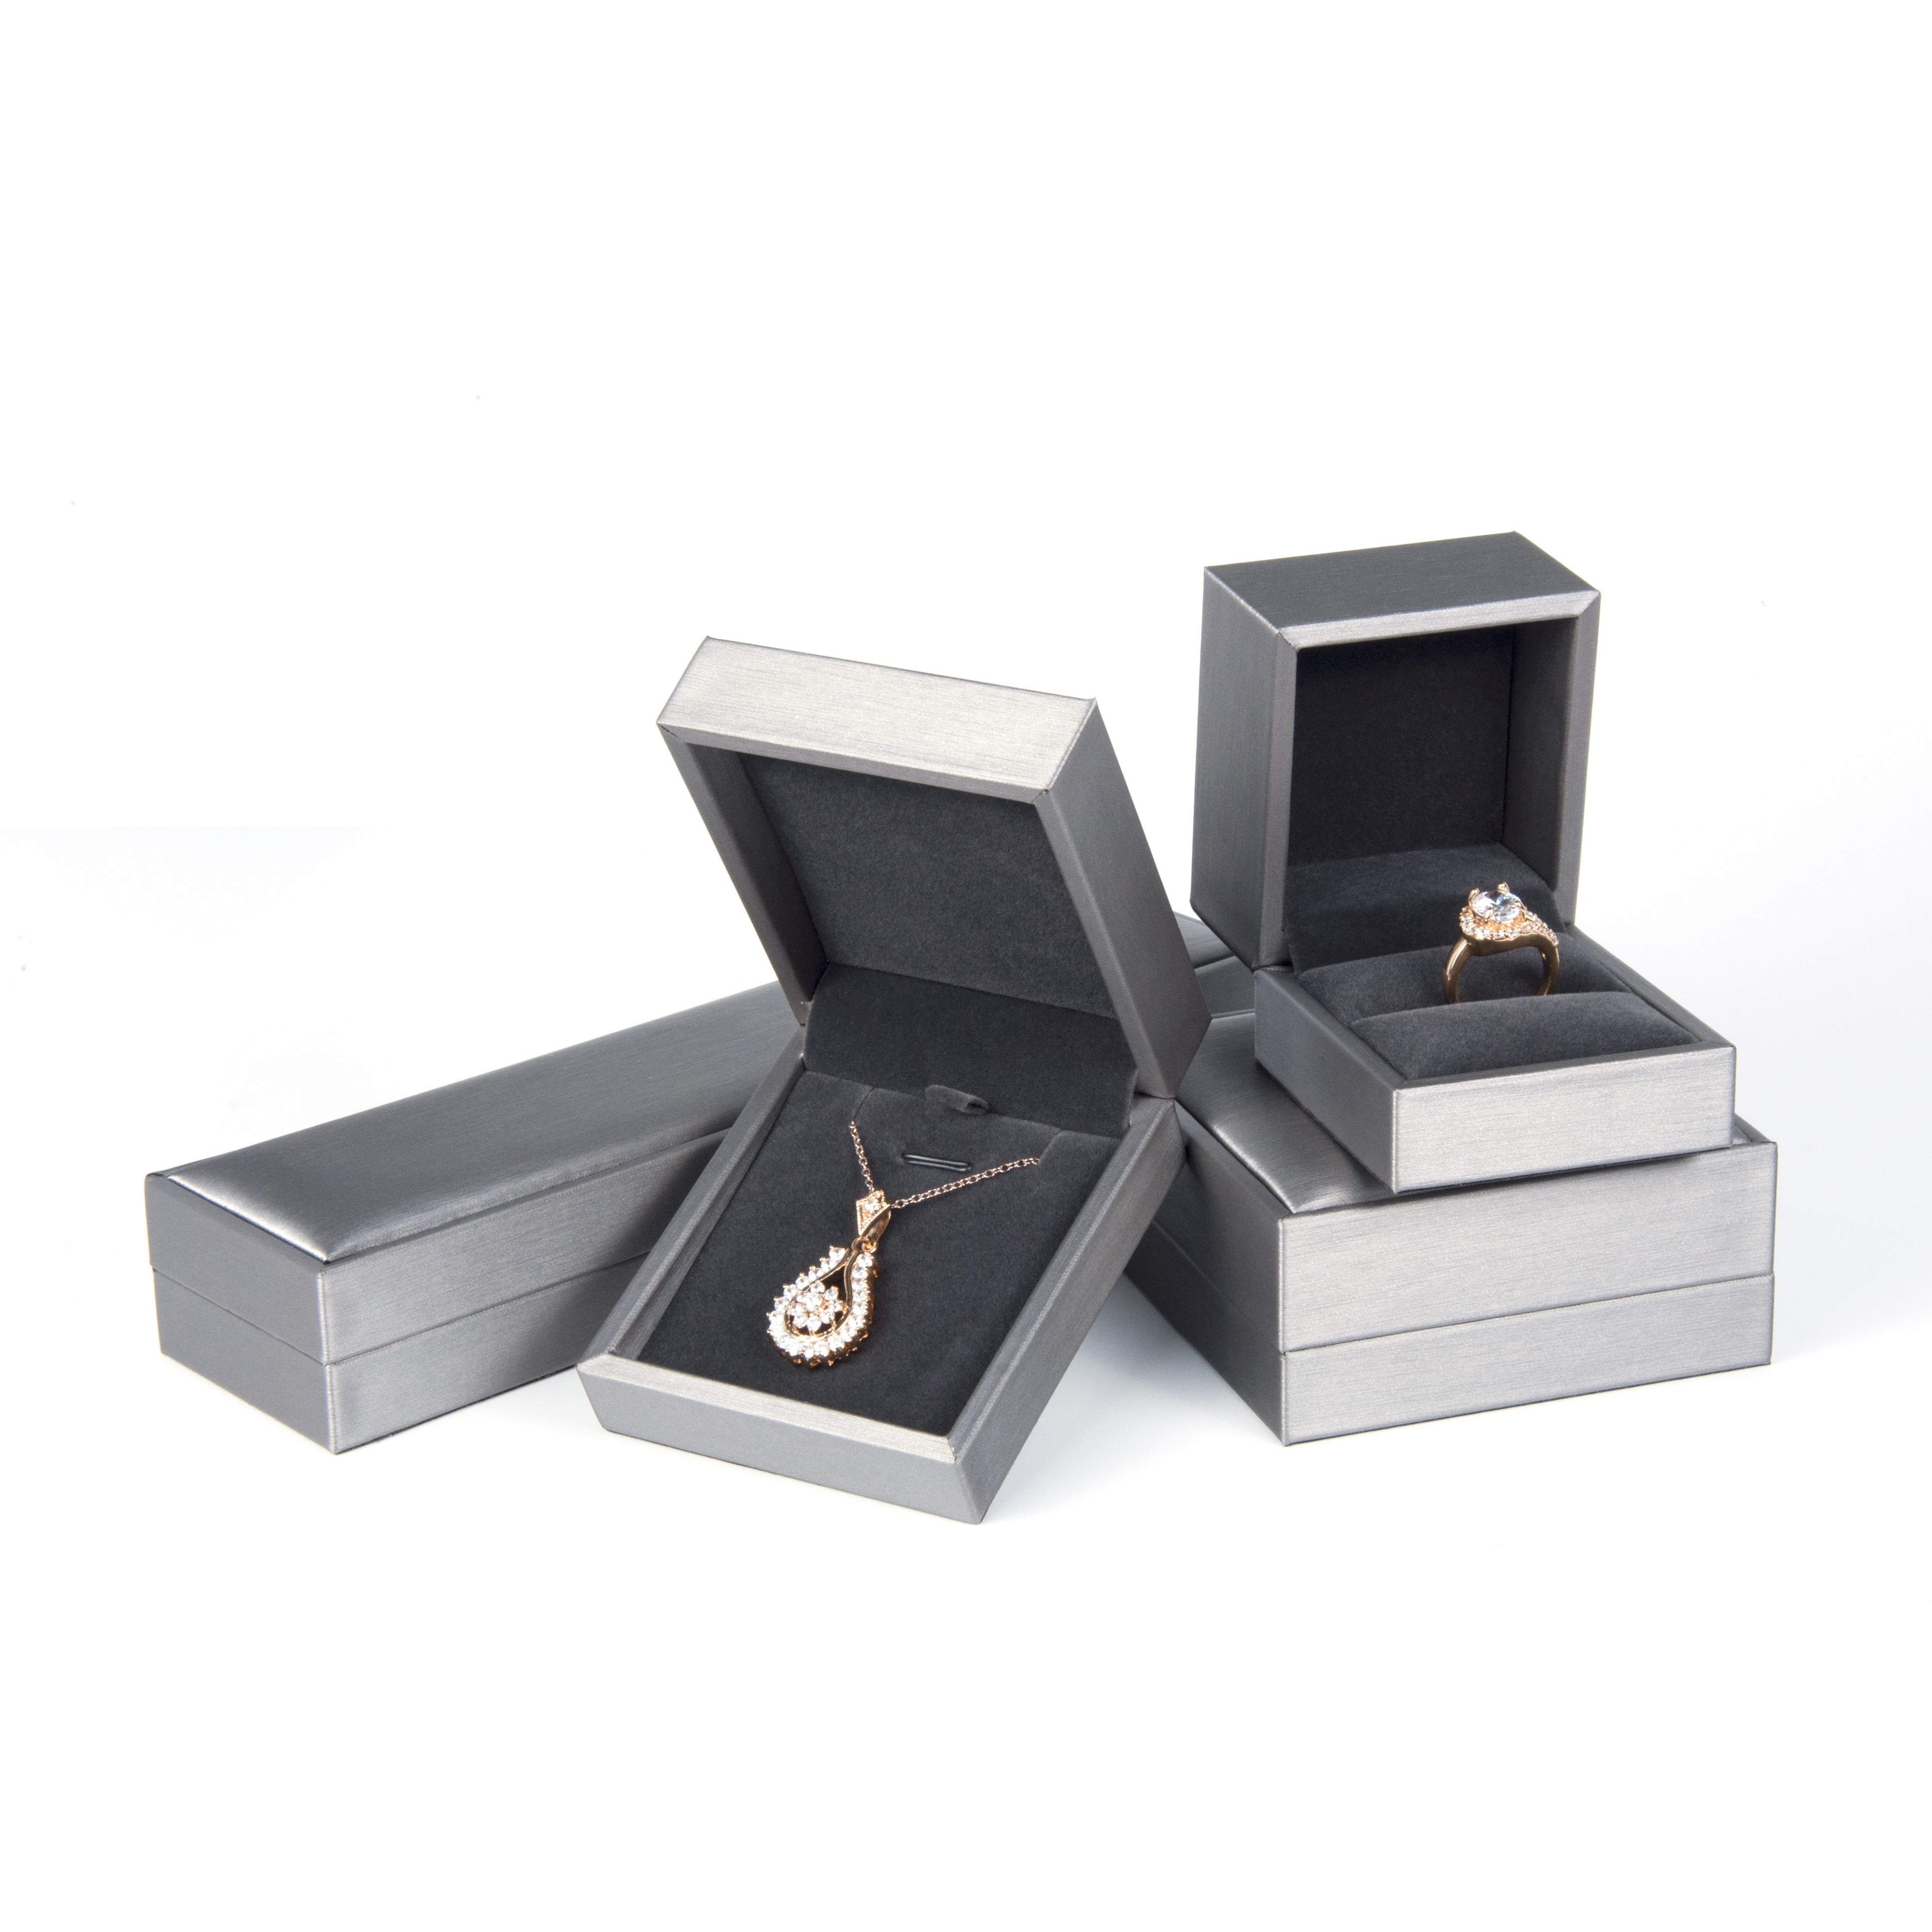 Stock 200pcs PU Leather Box Jewelry Leatherette Bracelet Ring Necklace Display Packaging Box